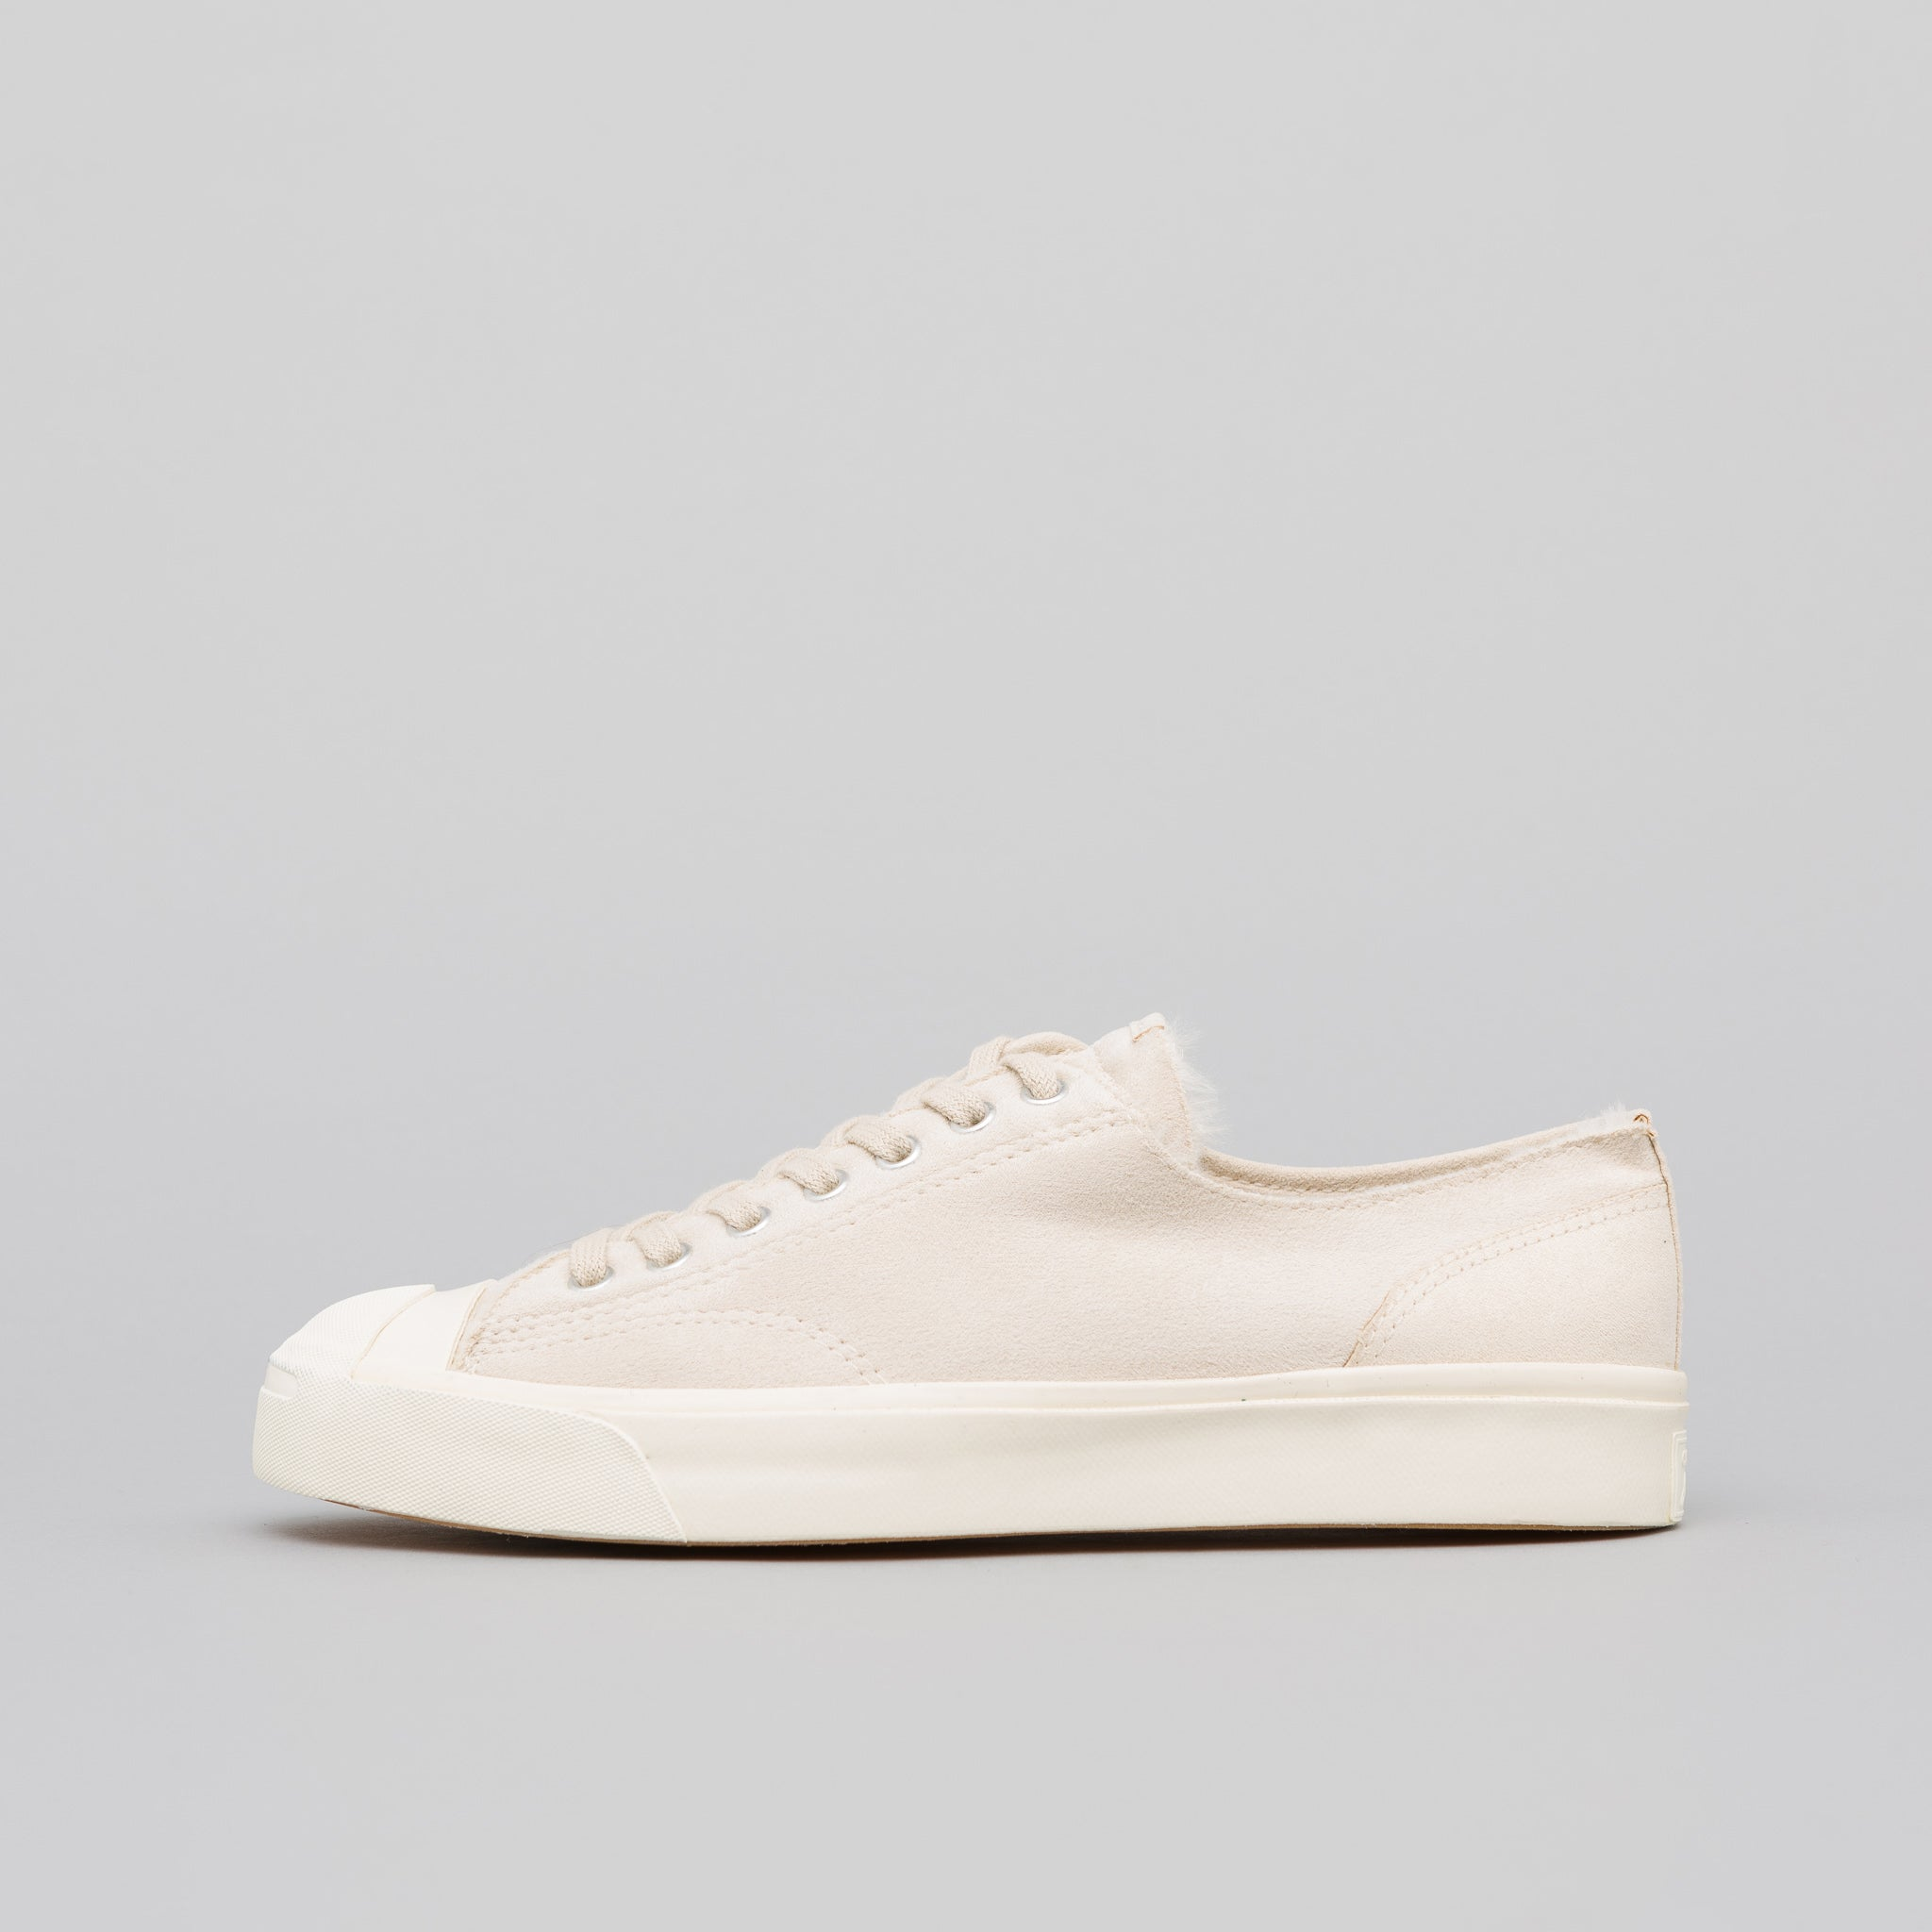 da3748f0555c Converse x CLOT Jack Purcell Ox in White Swan